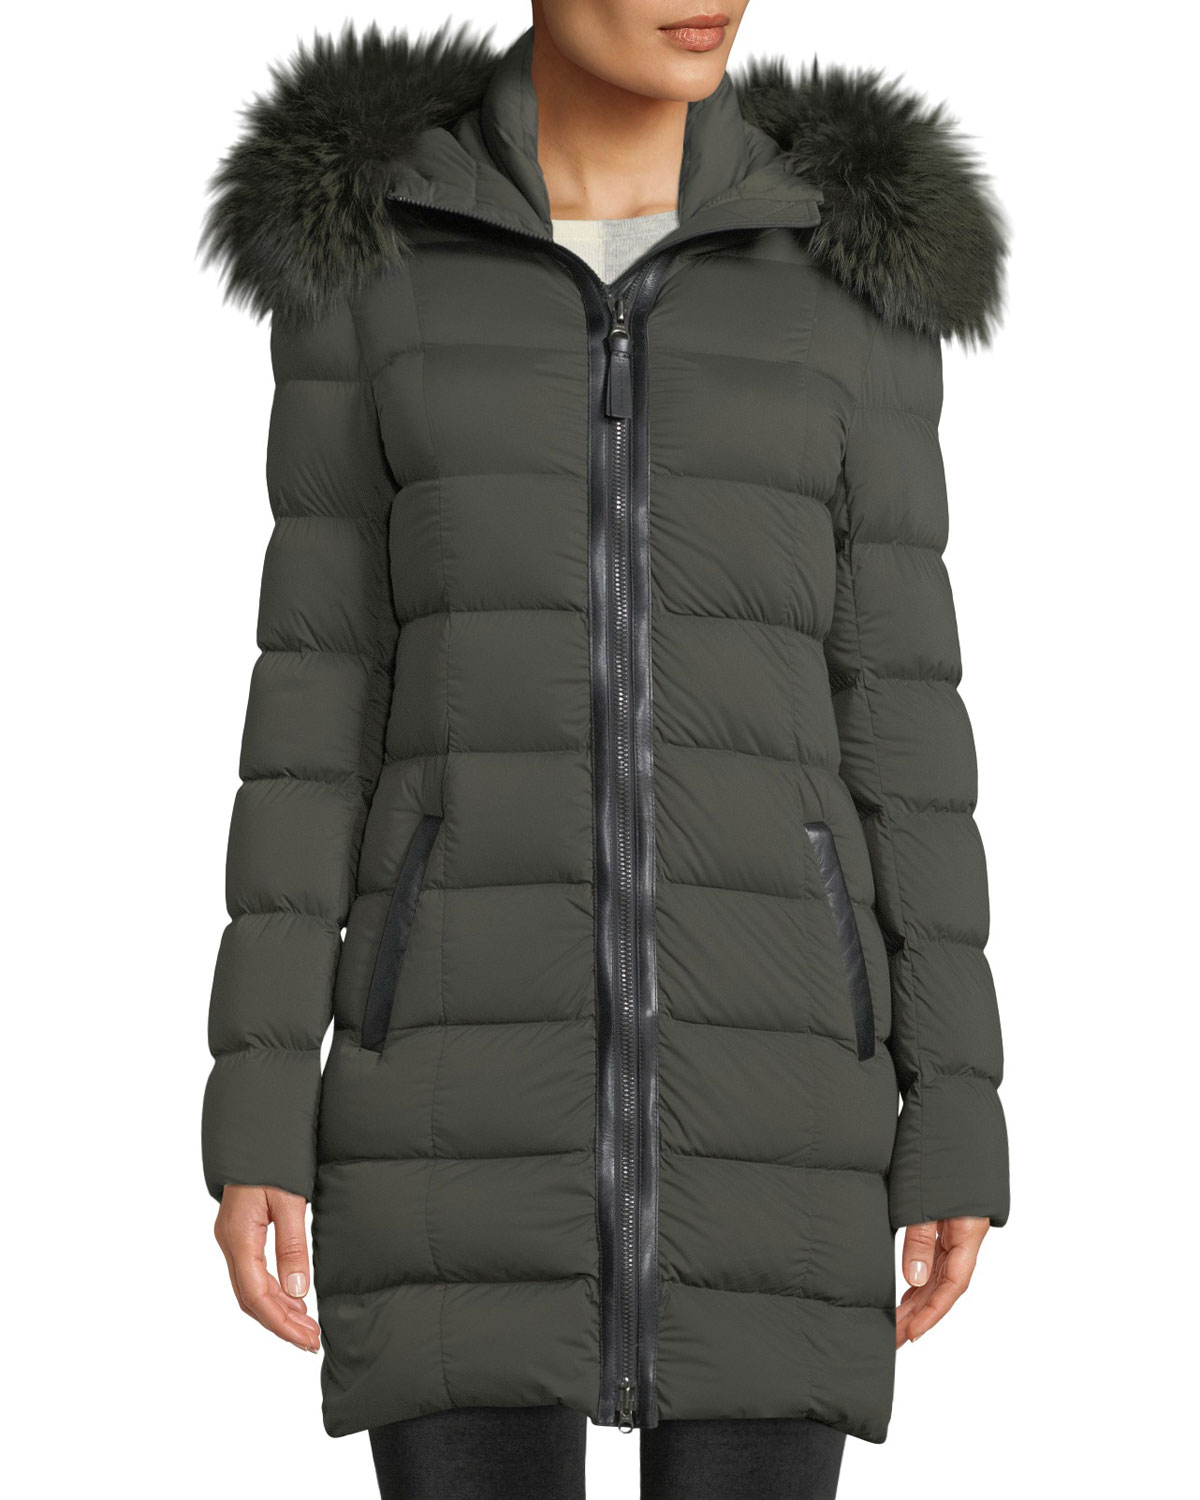 CALLA HOODED PUFFER COAT W/ FUR TRIM